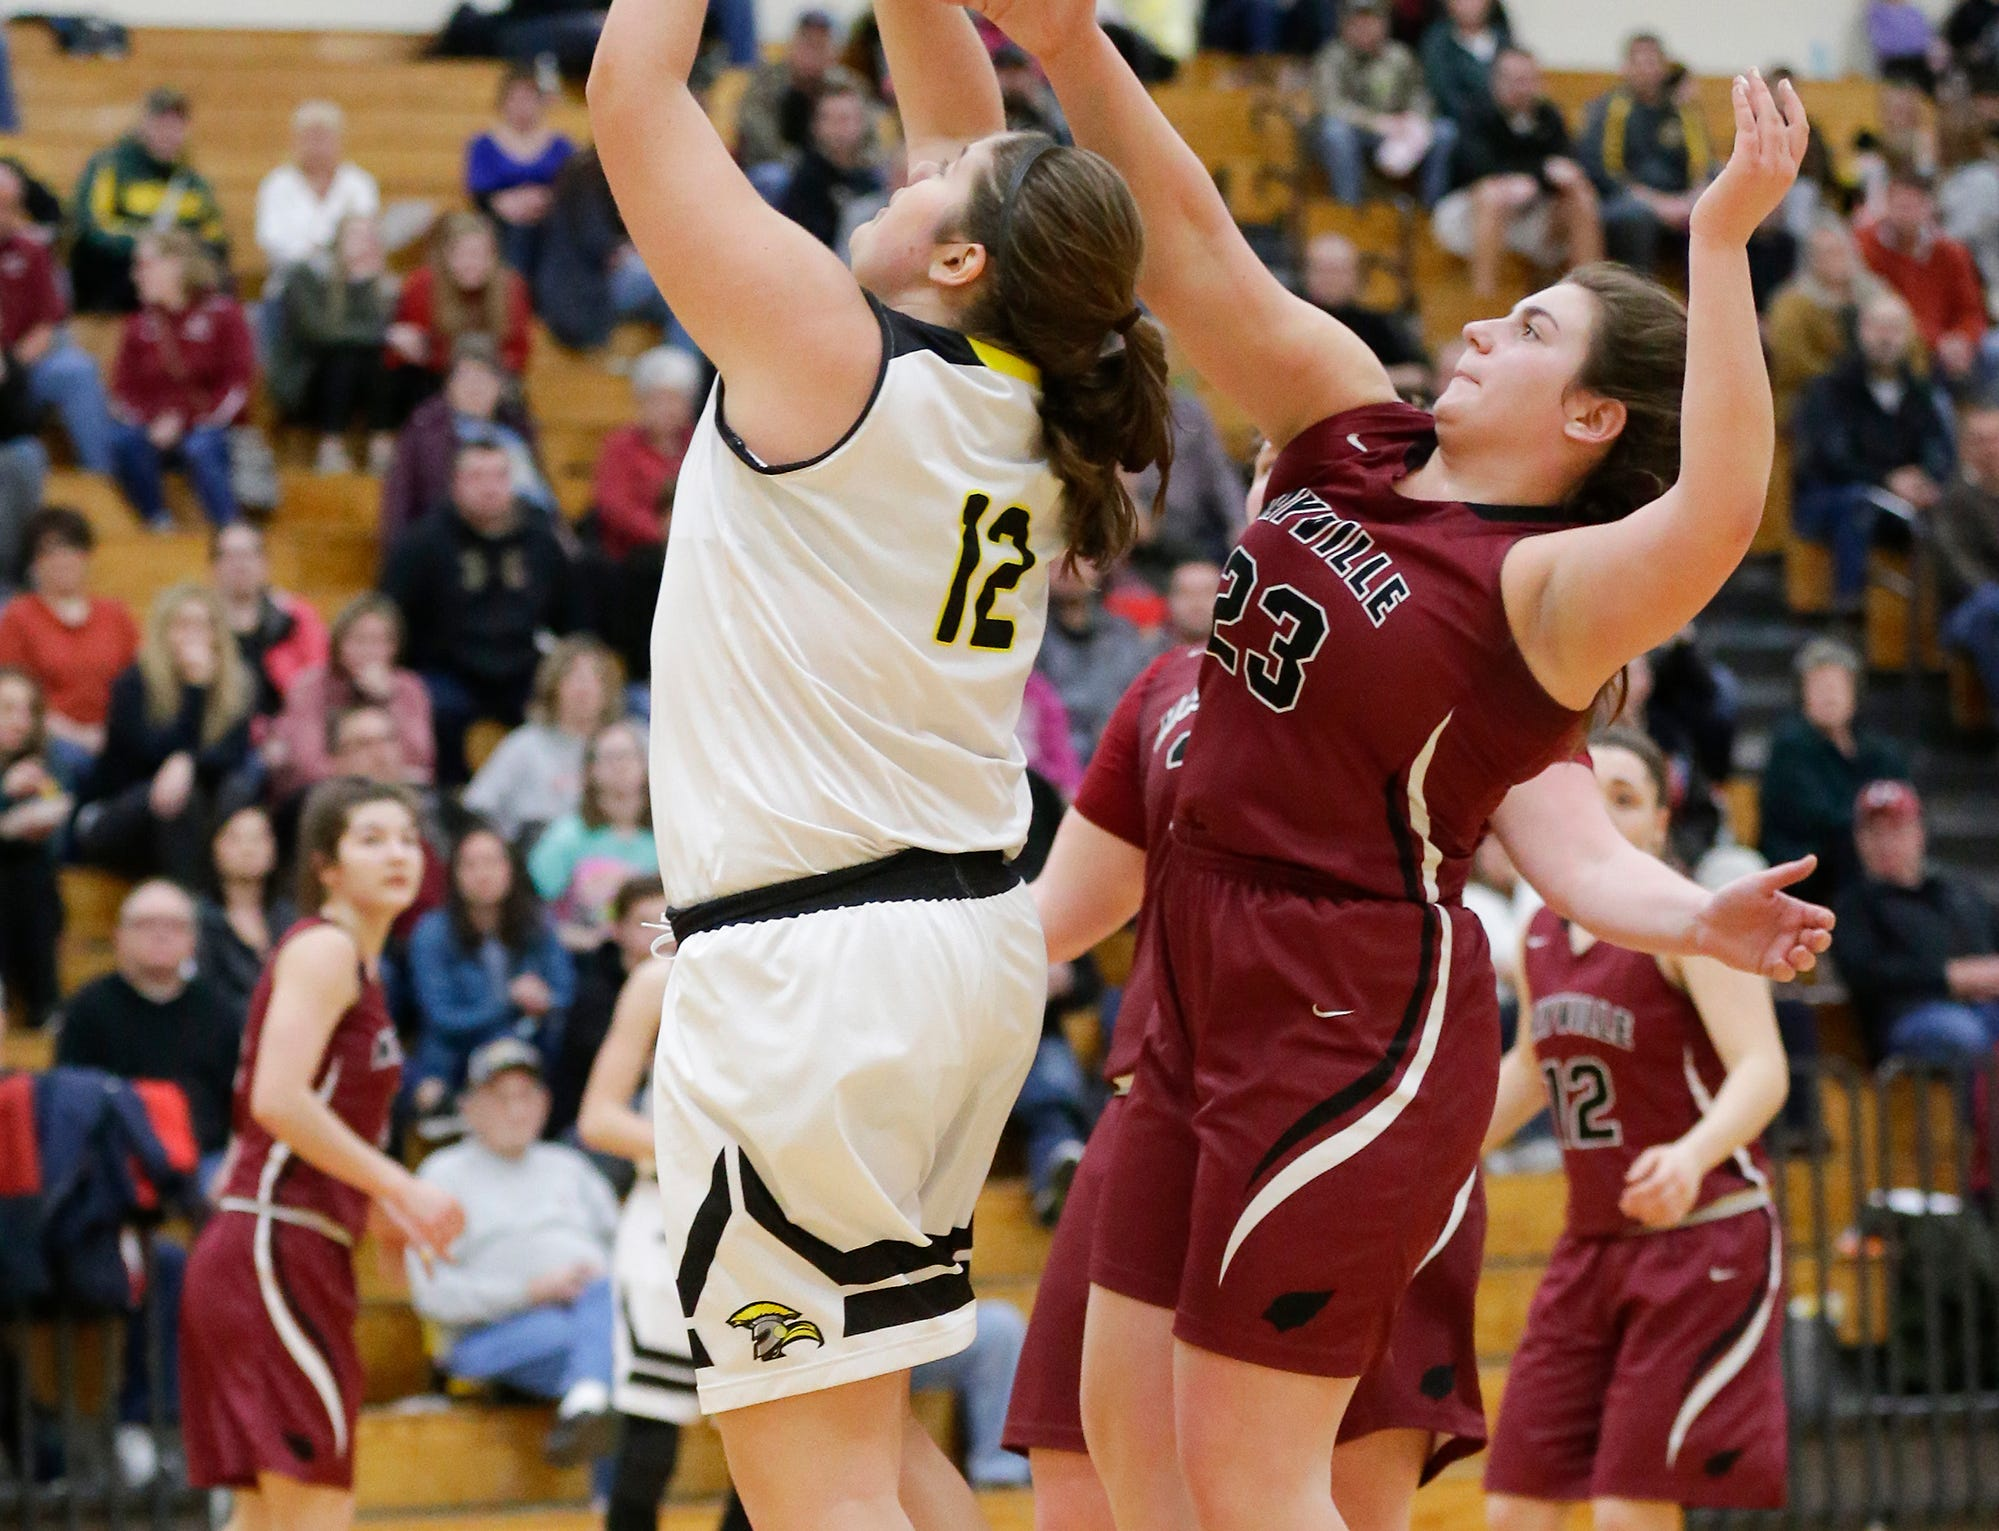 Waupun High School girls basketball's Kelli Bonack (12) attempts a shot while being defended by Mayville High School's Makenzie Perry (23) Saturday, February 23, 2019 during their WIAA Division 4 sectional quarterfinal game in Waupun. Waupun won the game 62-45. Doug Raflik/USA TODAY NETWORK-Wisconsin